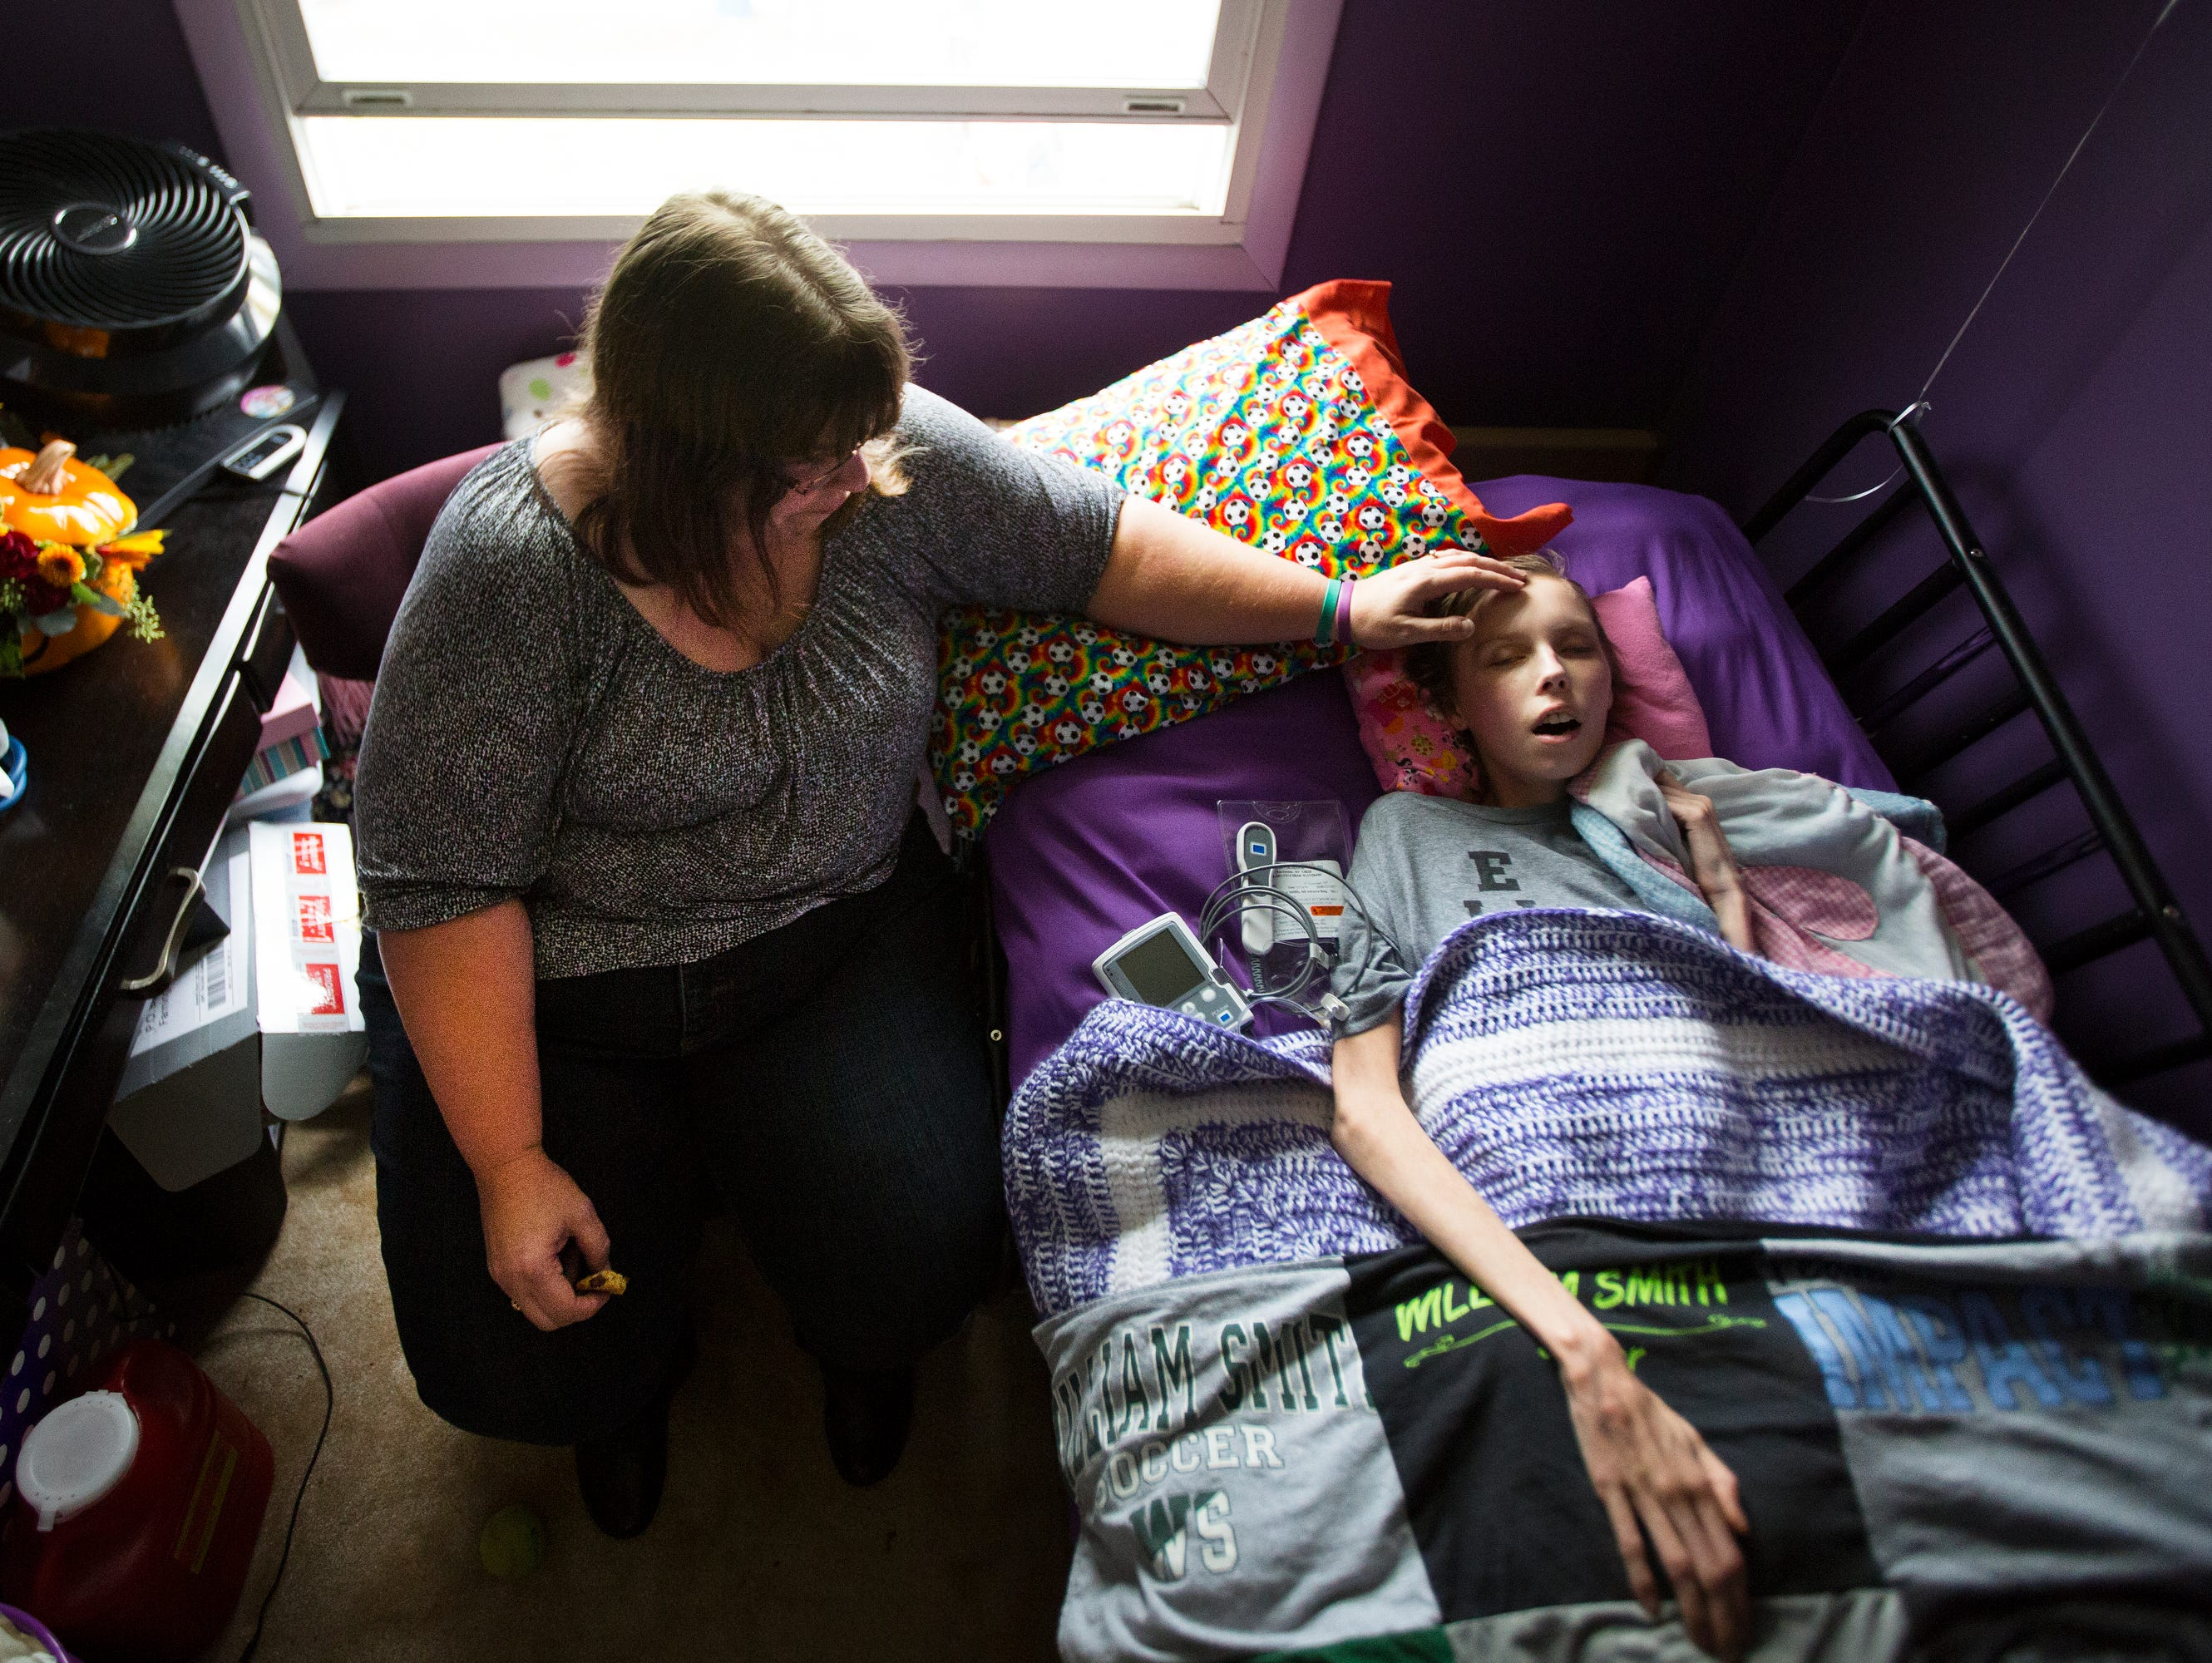 """Jamie Wagner lovingly touches Courtney's head as she rests in bed in their home in Farmington on Wednesday, October 21, 2015. """"You are perfect,"""" she repeated. """"I could stay here forever."""" Courtney, 18, has been battling brain cancer since she was 14."""